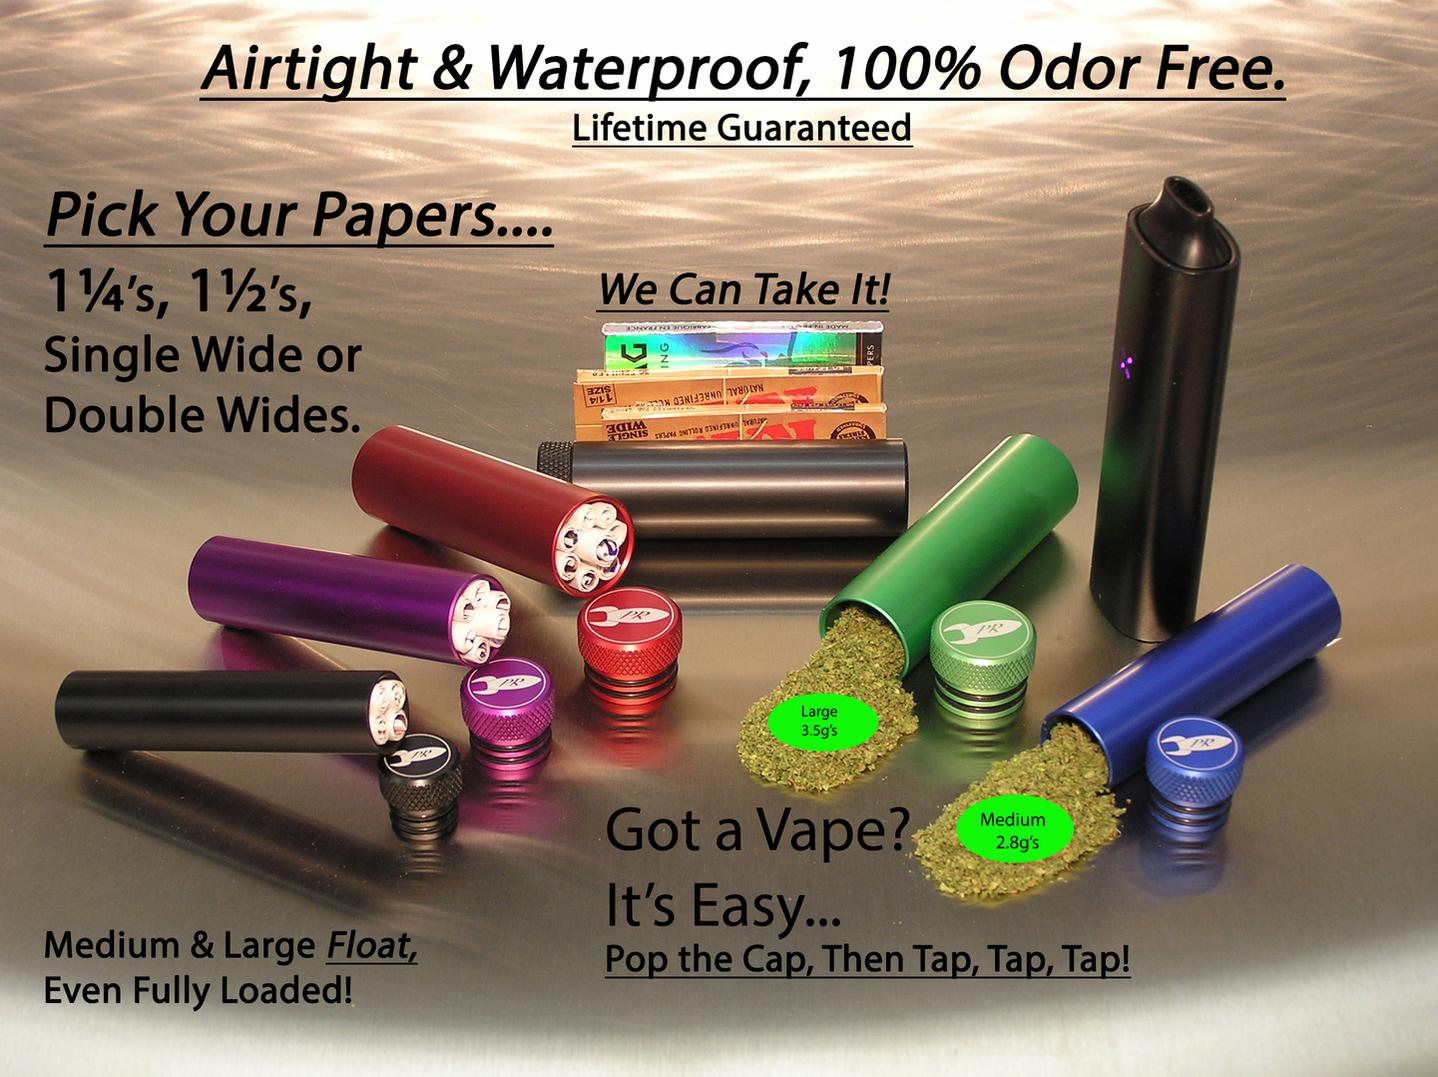 Pocket Weed Containers, Waterproof Odorless Marijuana Stash